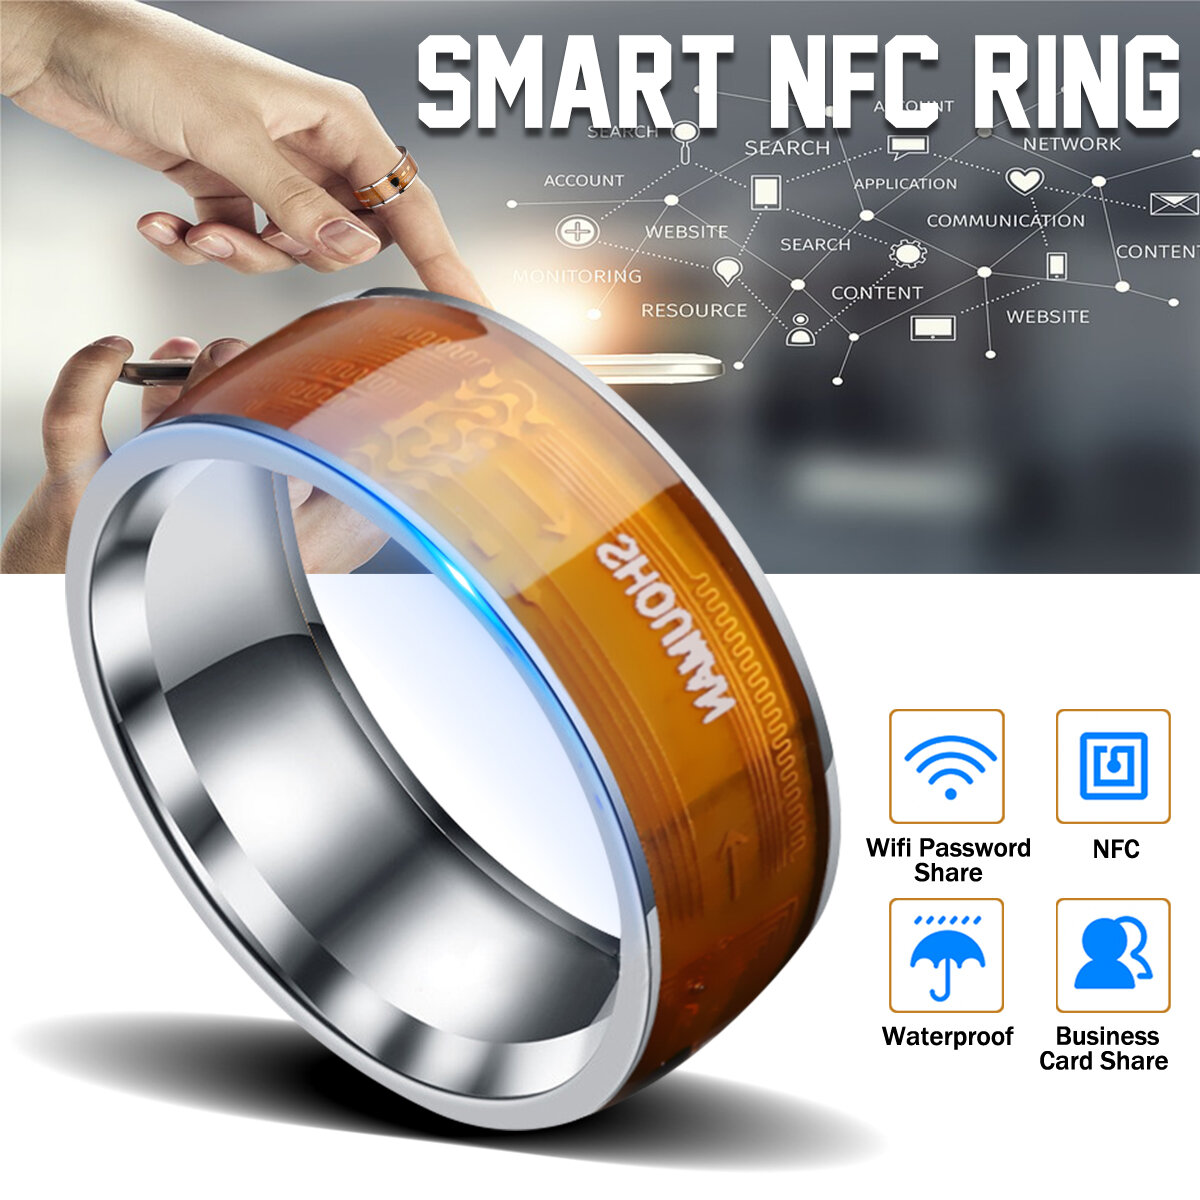 NFC multifunktionale wasserdichte intelligente Ringe Finger Digital Smart Ring